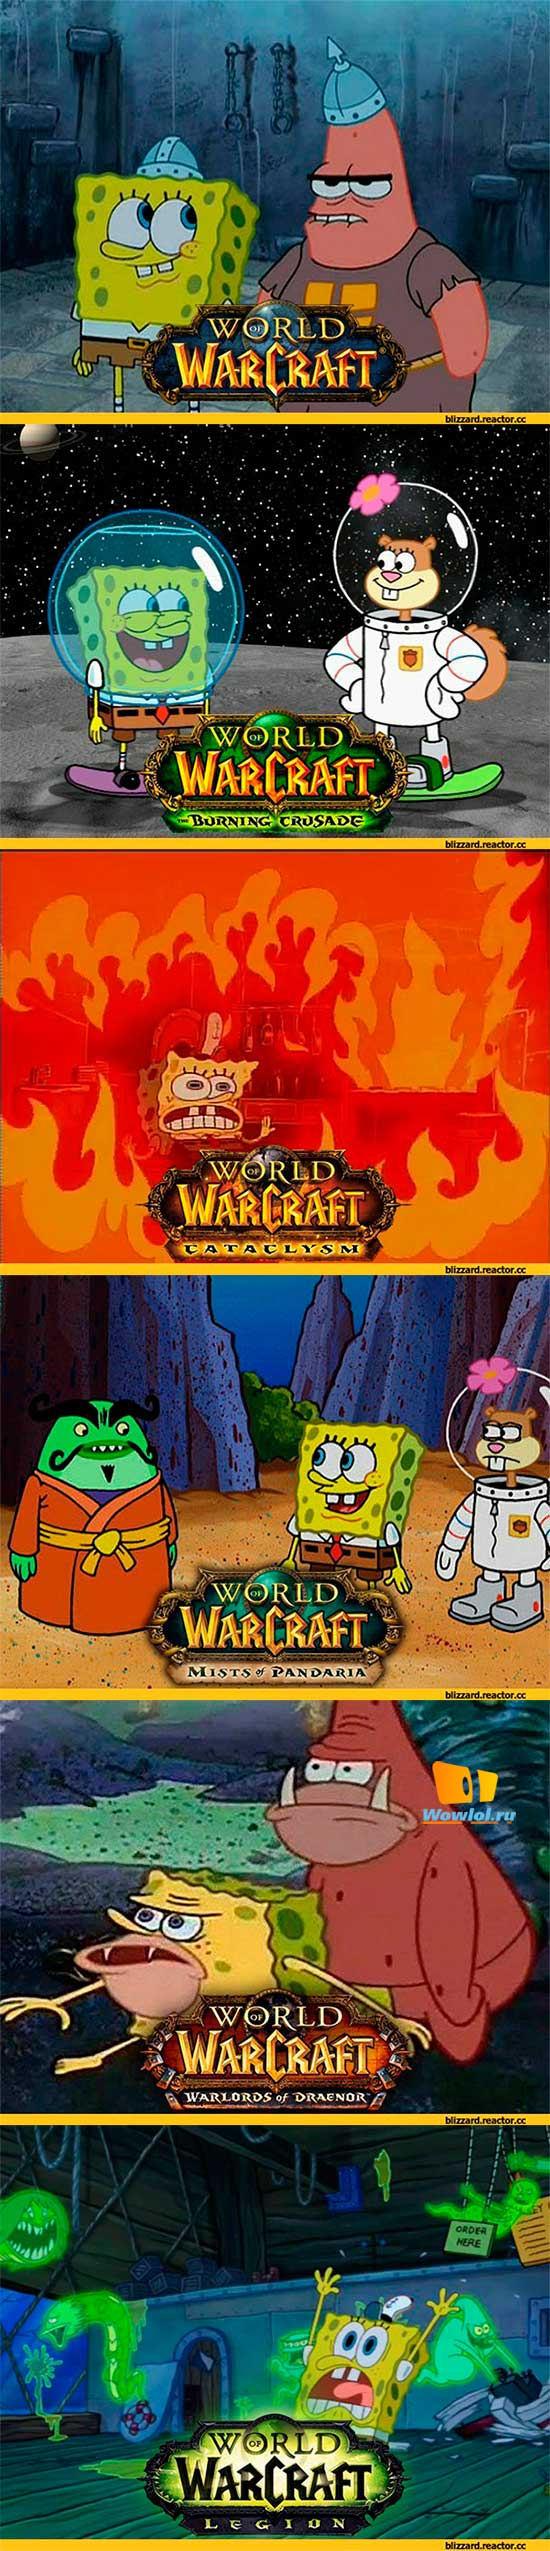 SpongeBob SquarePants в World of Warcraft